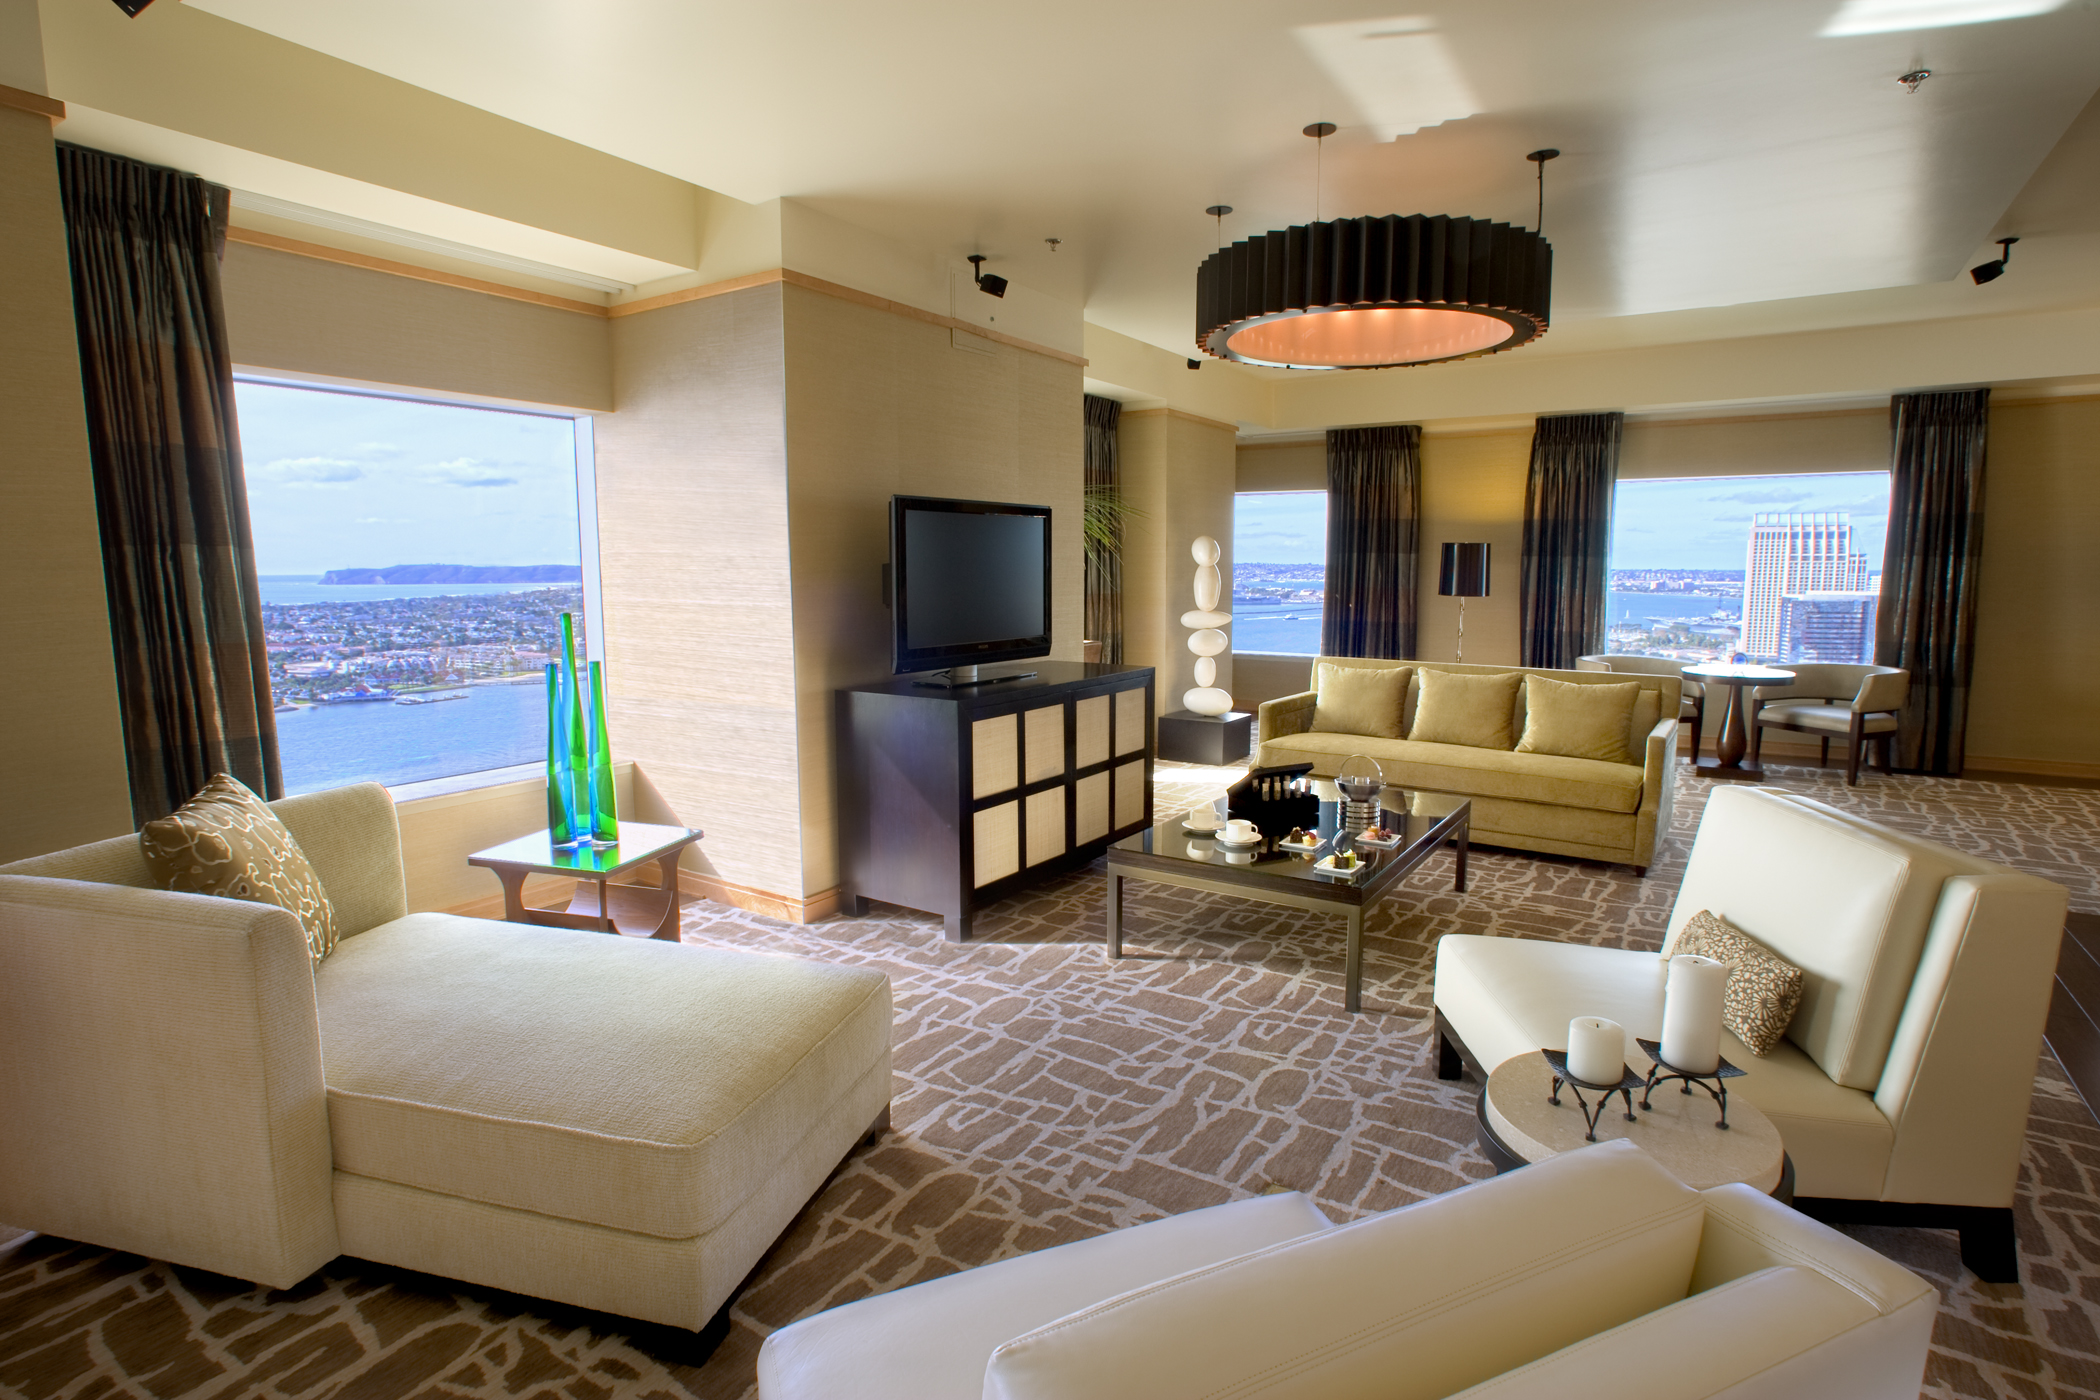 Exclusive presidential hotel suites in san diego - 2 bedroom suites in san diego ca ...